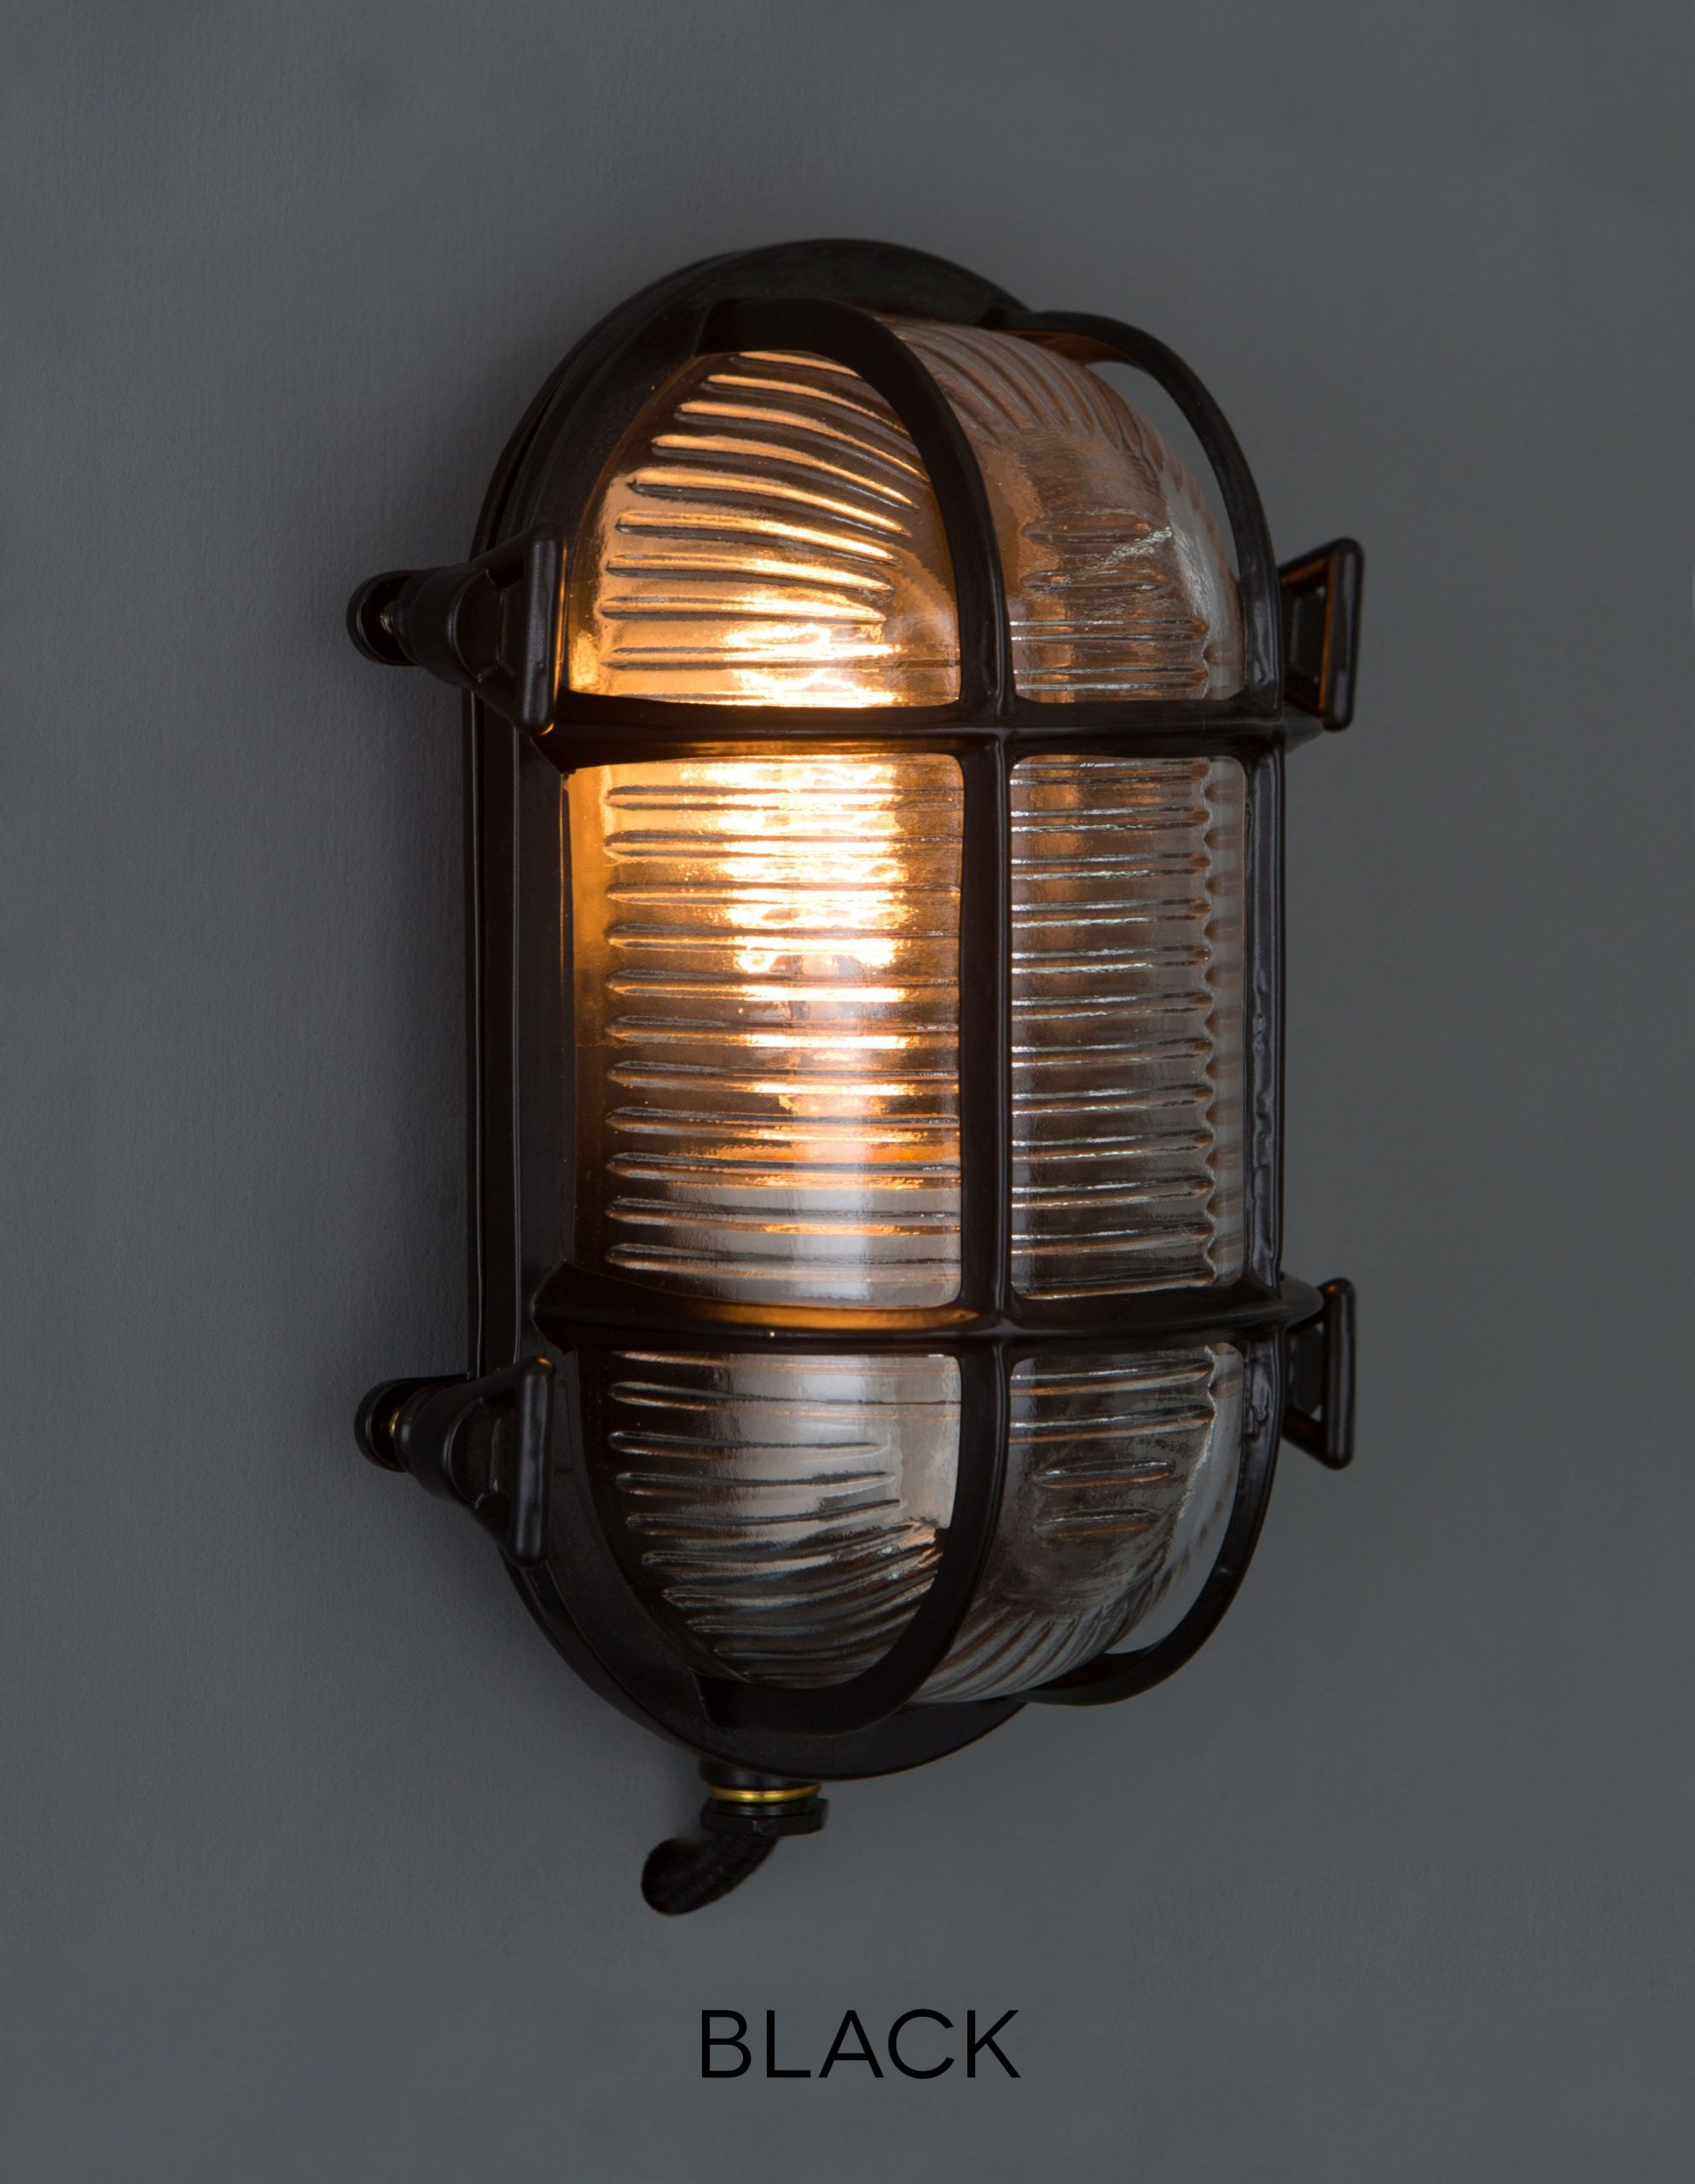 Lighting for both indoors and outdoors